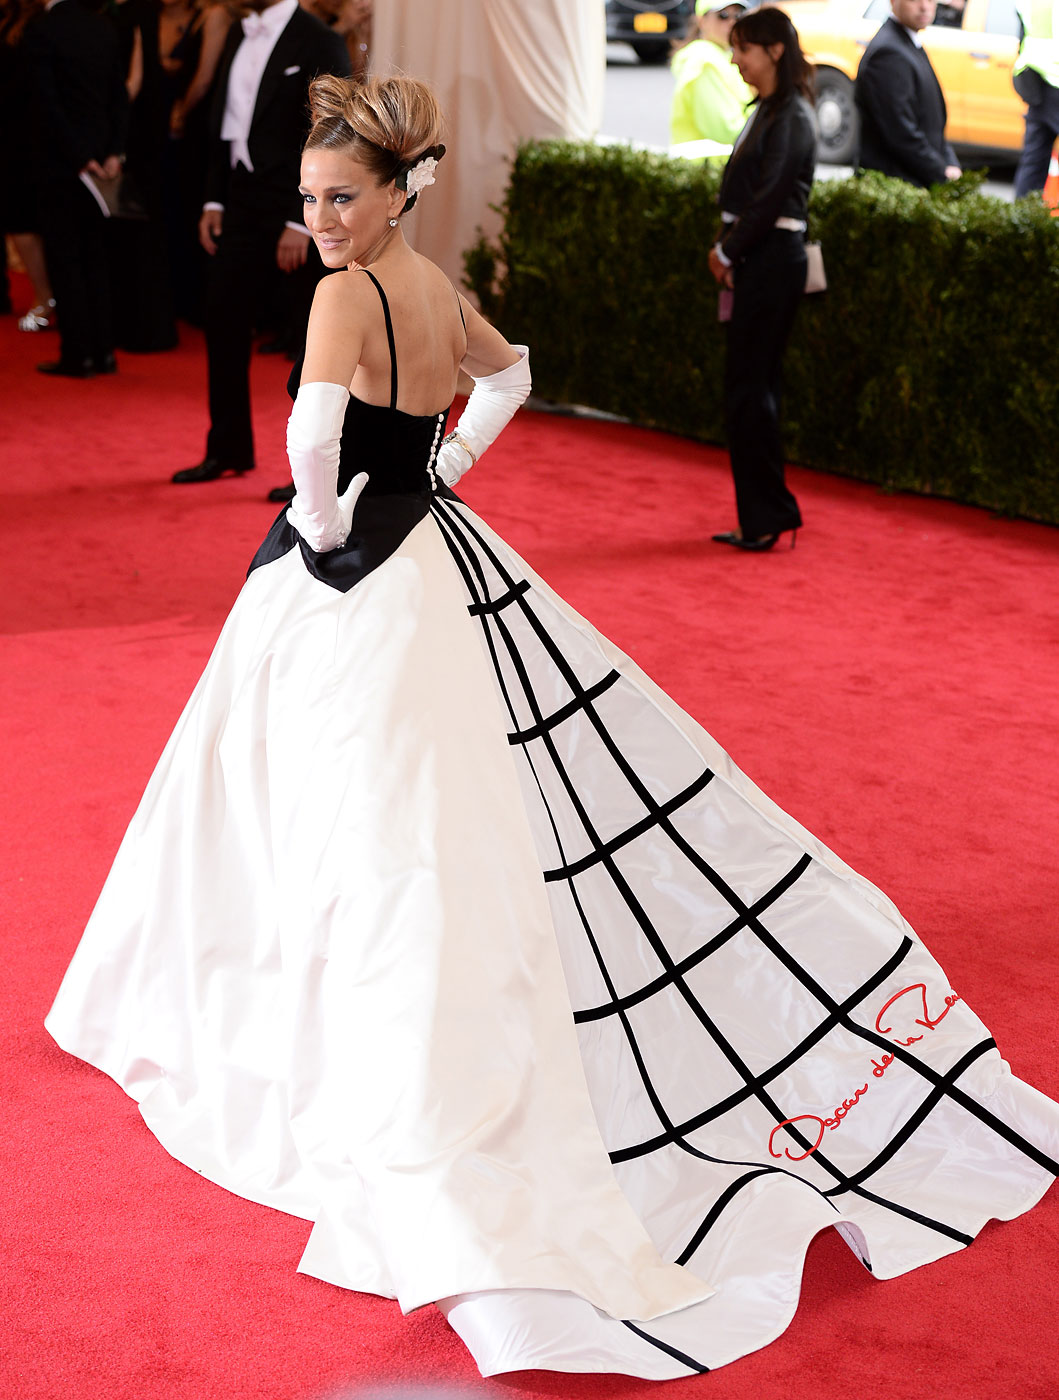 Sarah Jessica Parker wears Oscar de la Renta to the  Charles James: Beyond Fashion  Costume Institute Gala held at the Metropolitan Museum of Art on May 5, 2014 in New York City.